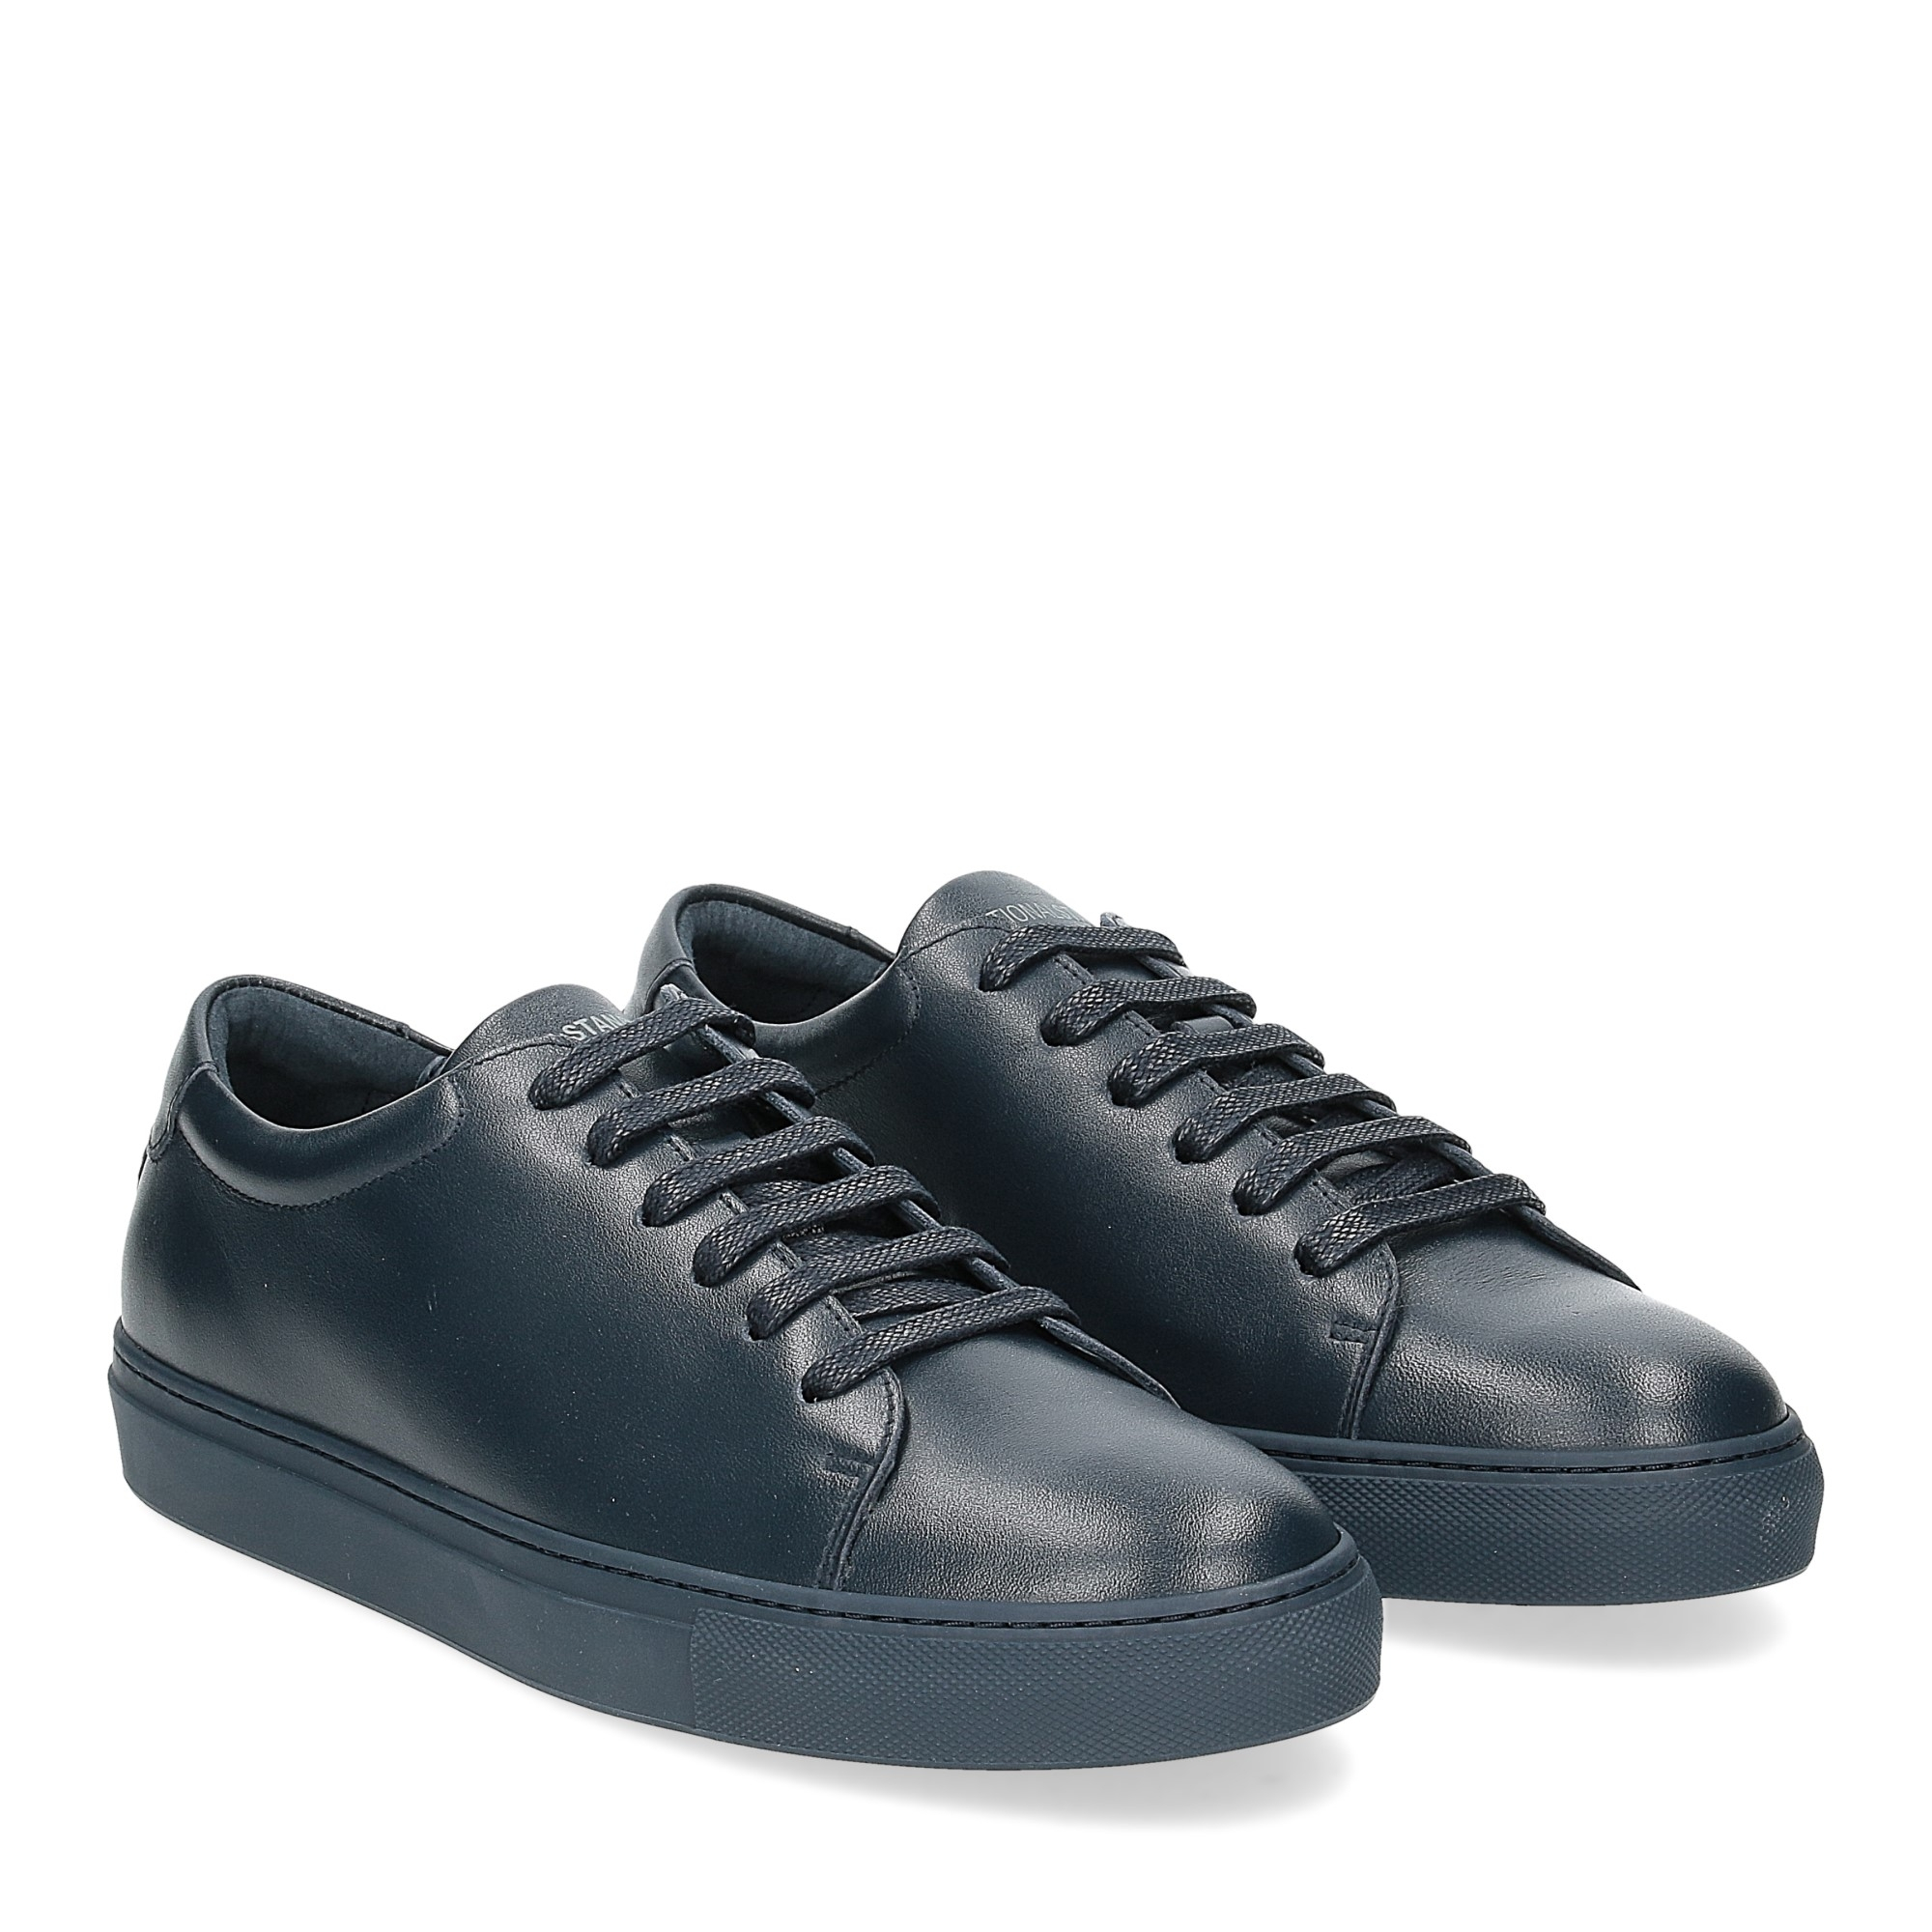 National Standard Sneaker navy monochrome